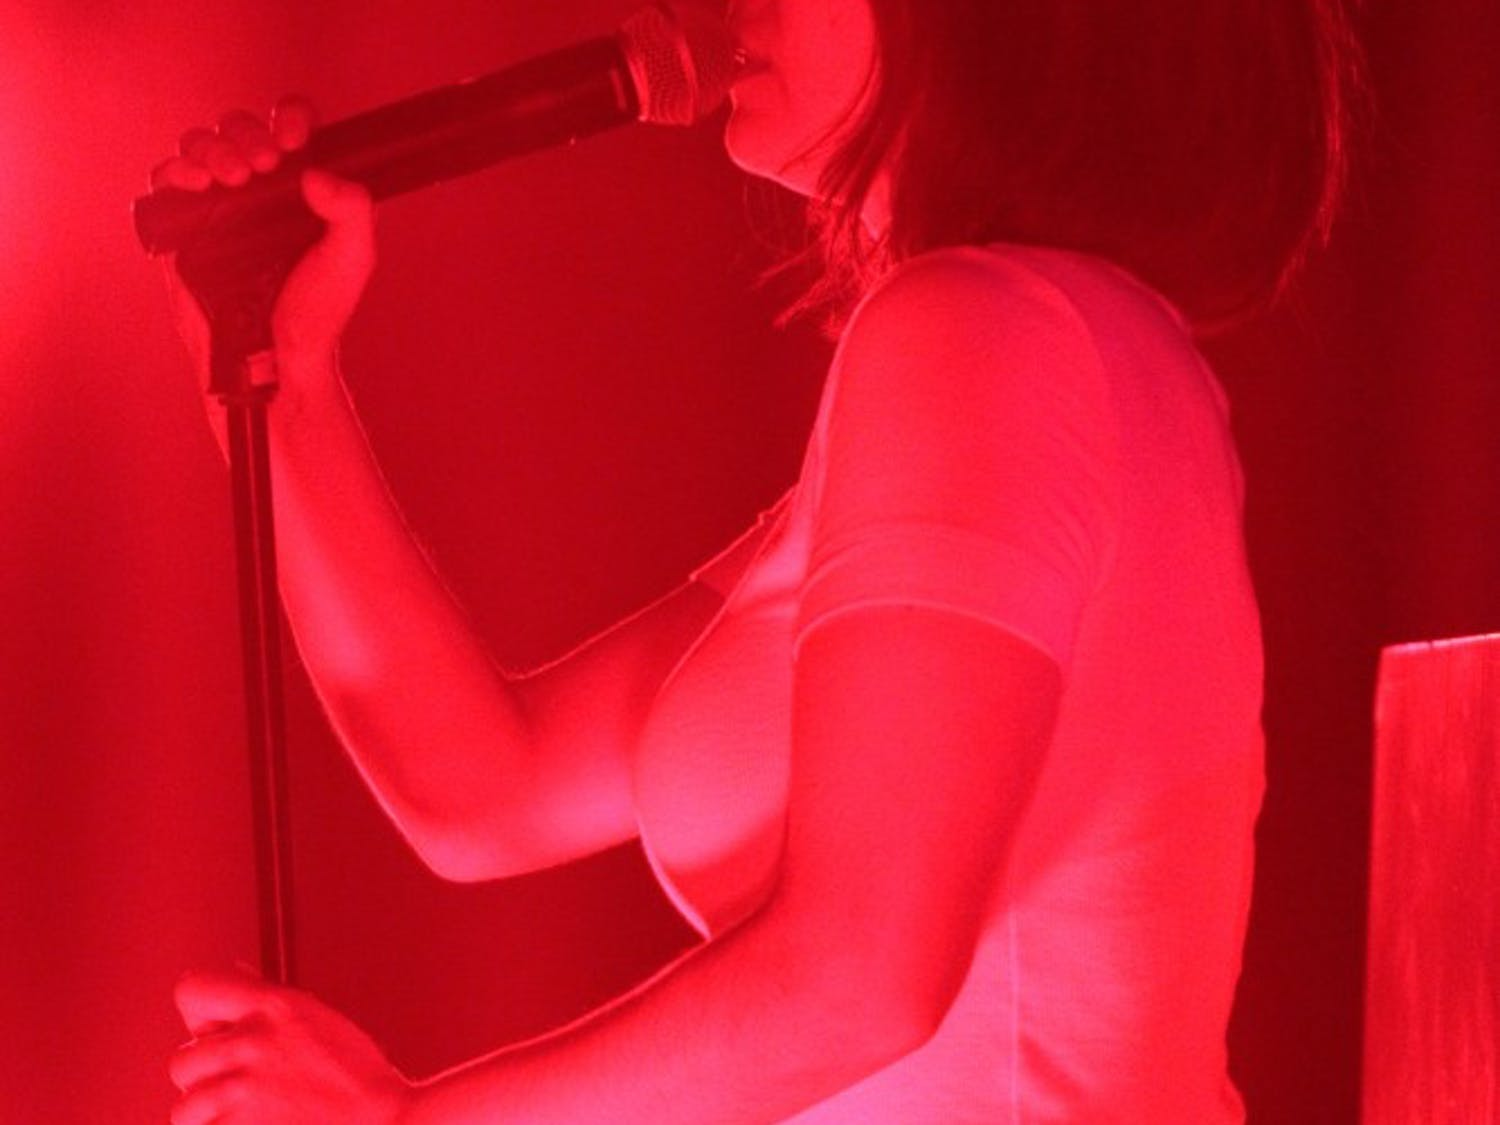 Mitski performed at Cat's Cradle on Wednesday, April 16, 2019 for one of two sold out shows.